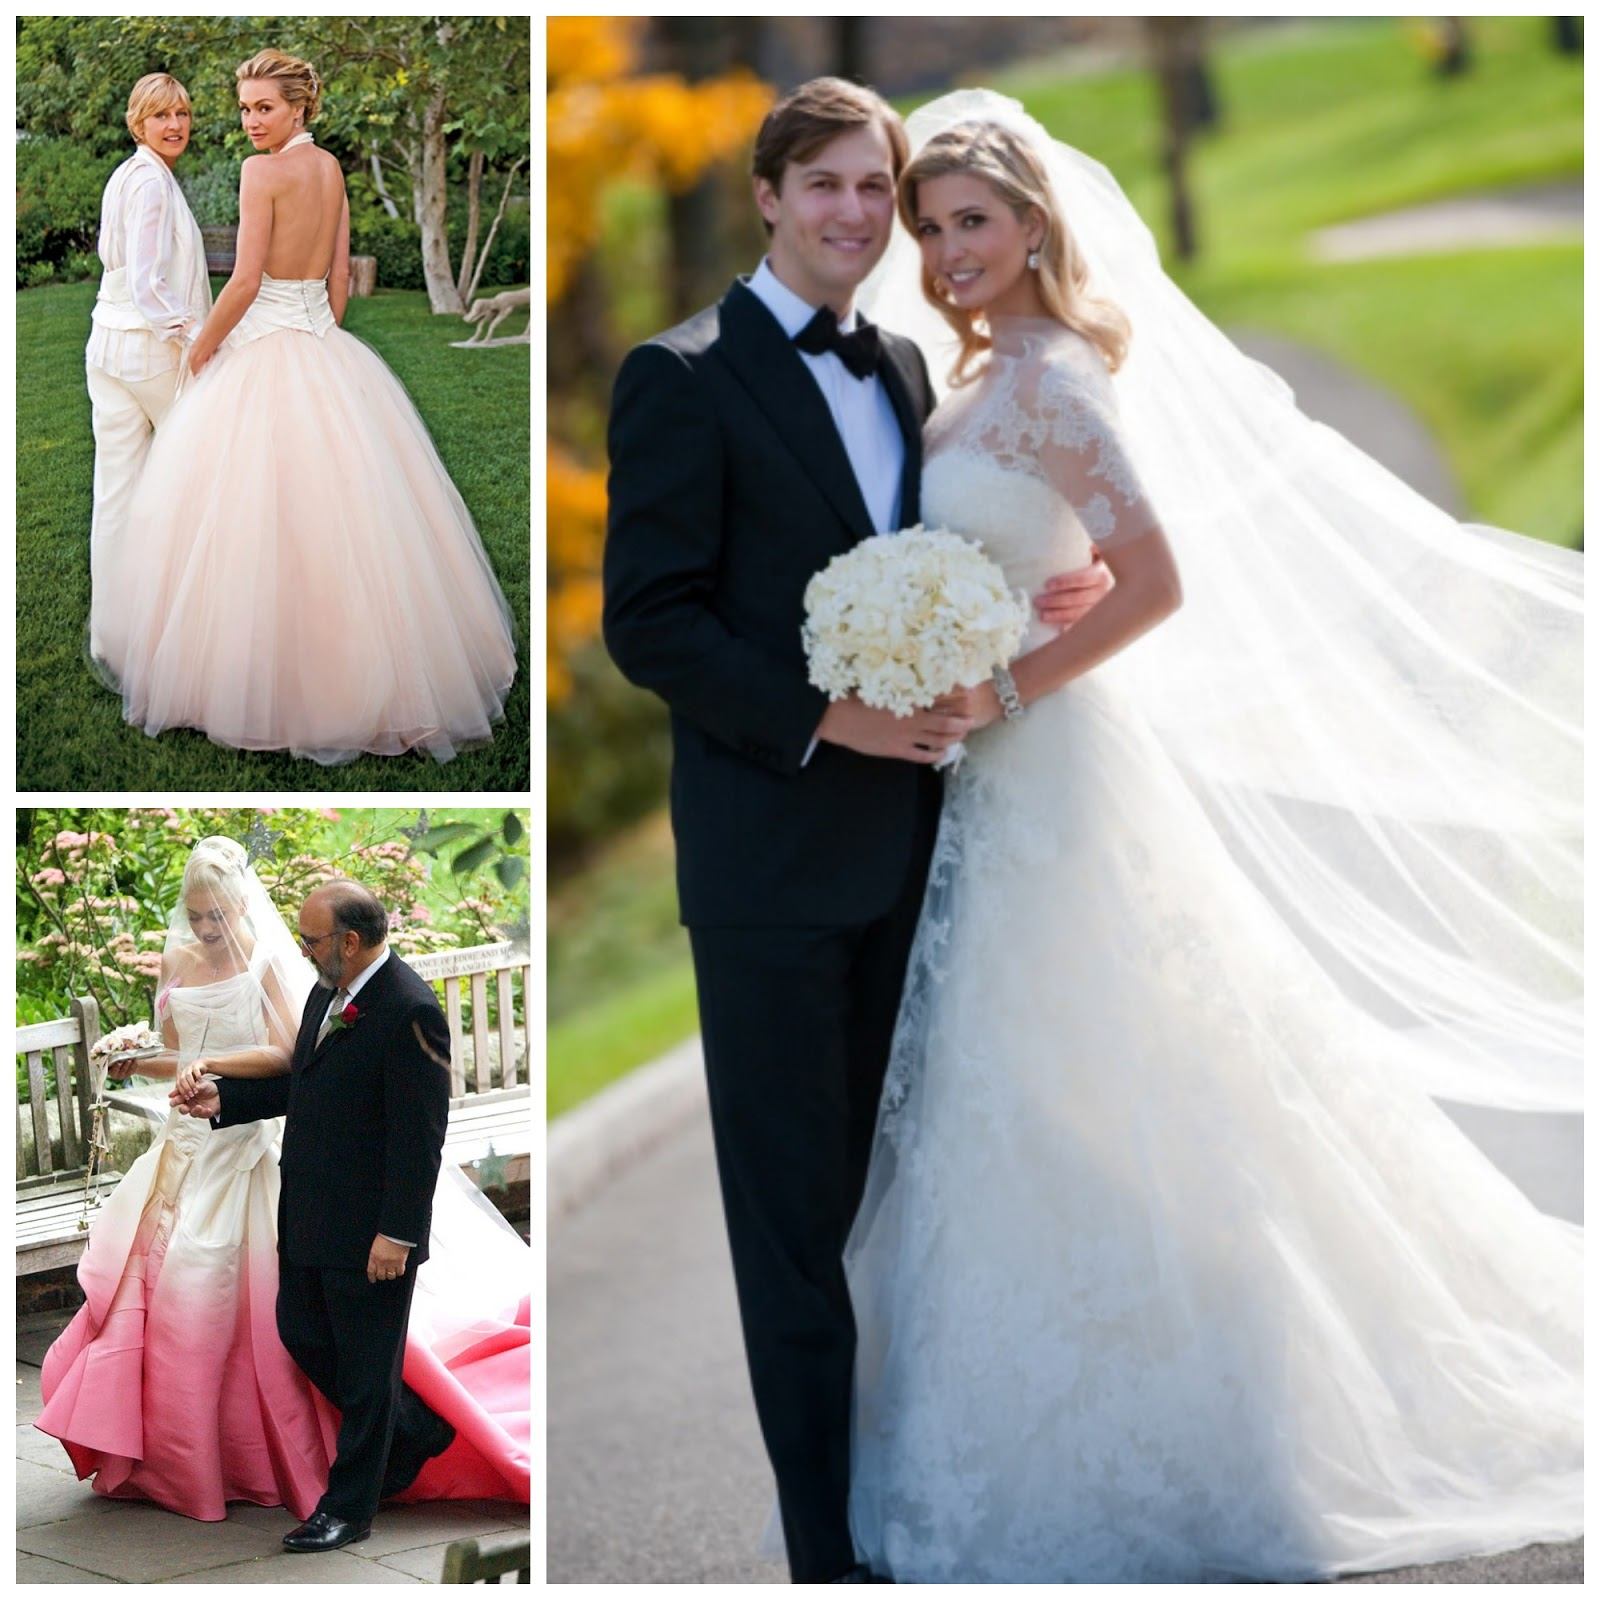 Portia De Rossi Wedding Gown: Luv, The Bride: Icons